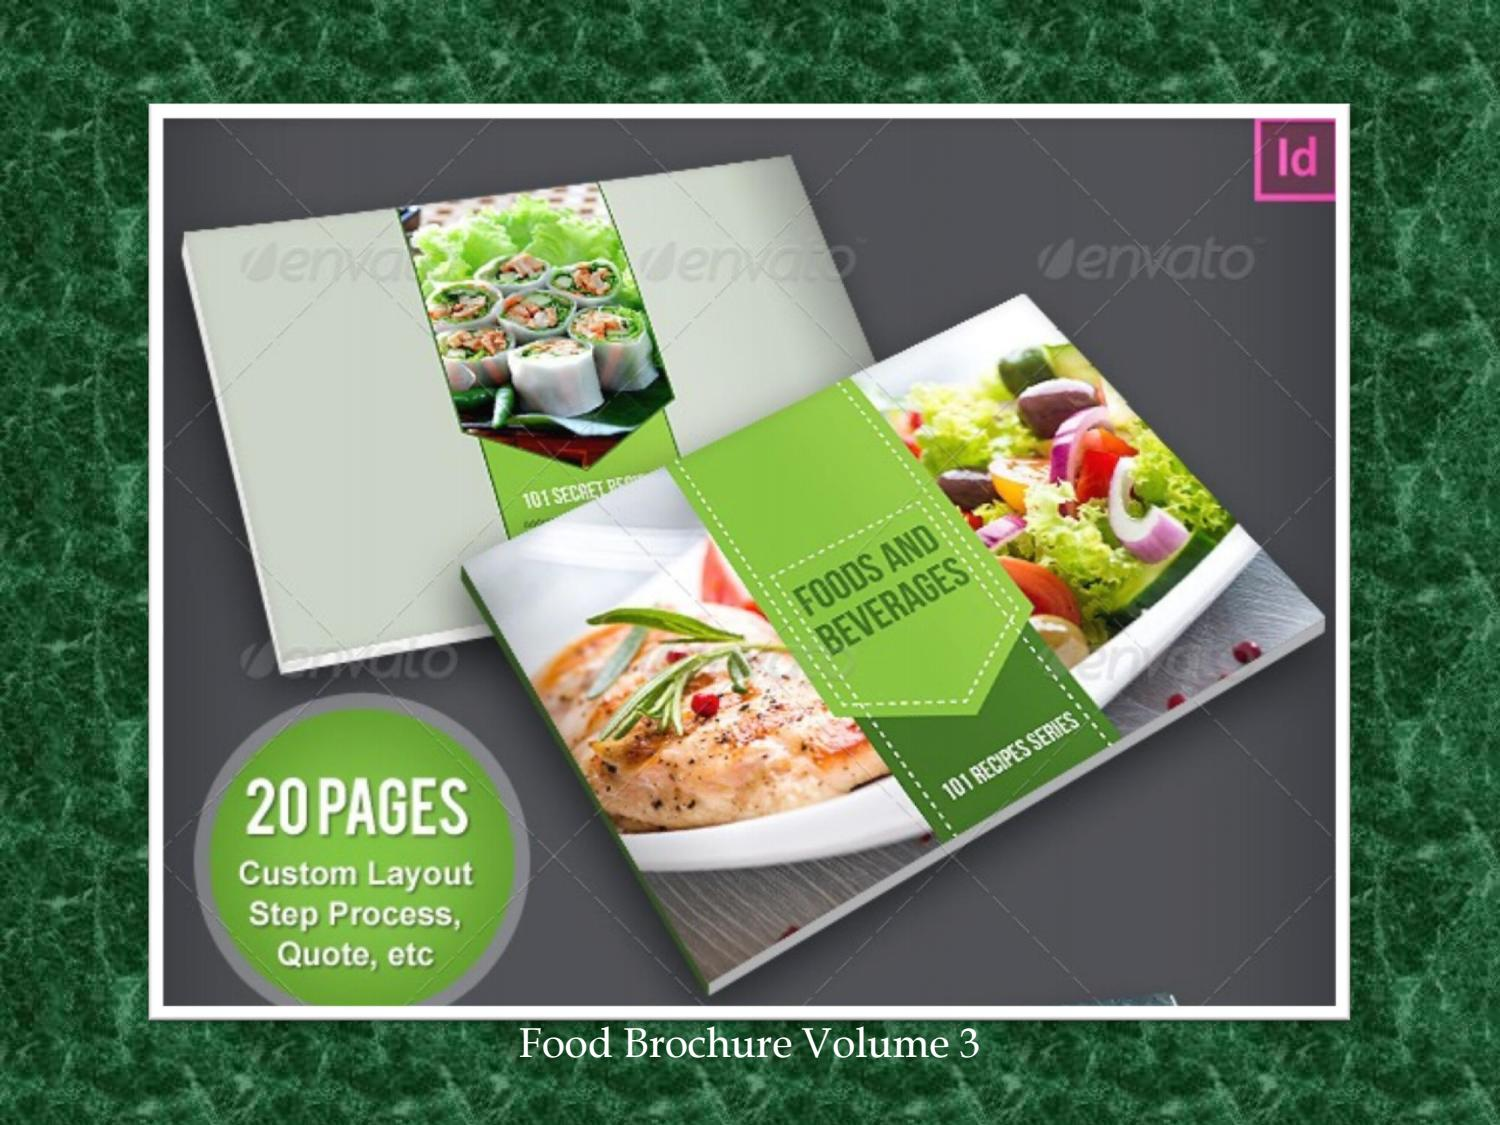 19 Contoh Brosur Produk Makanan Template Download By Masbadar Issuu